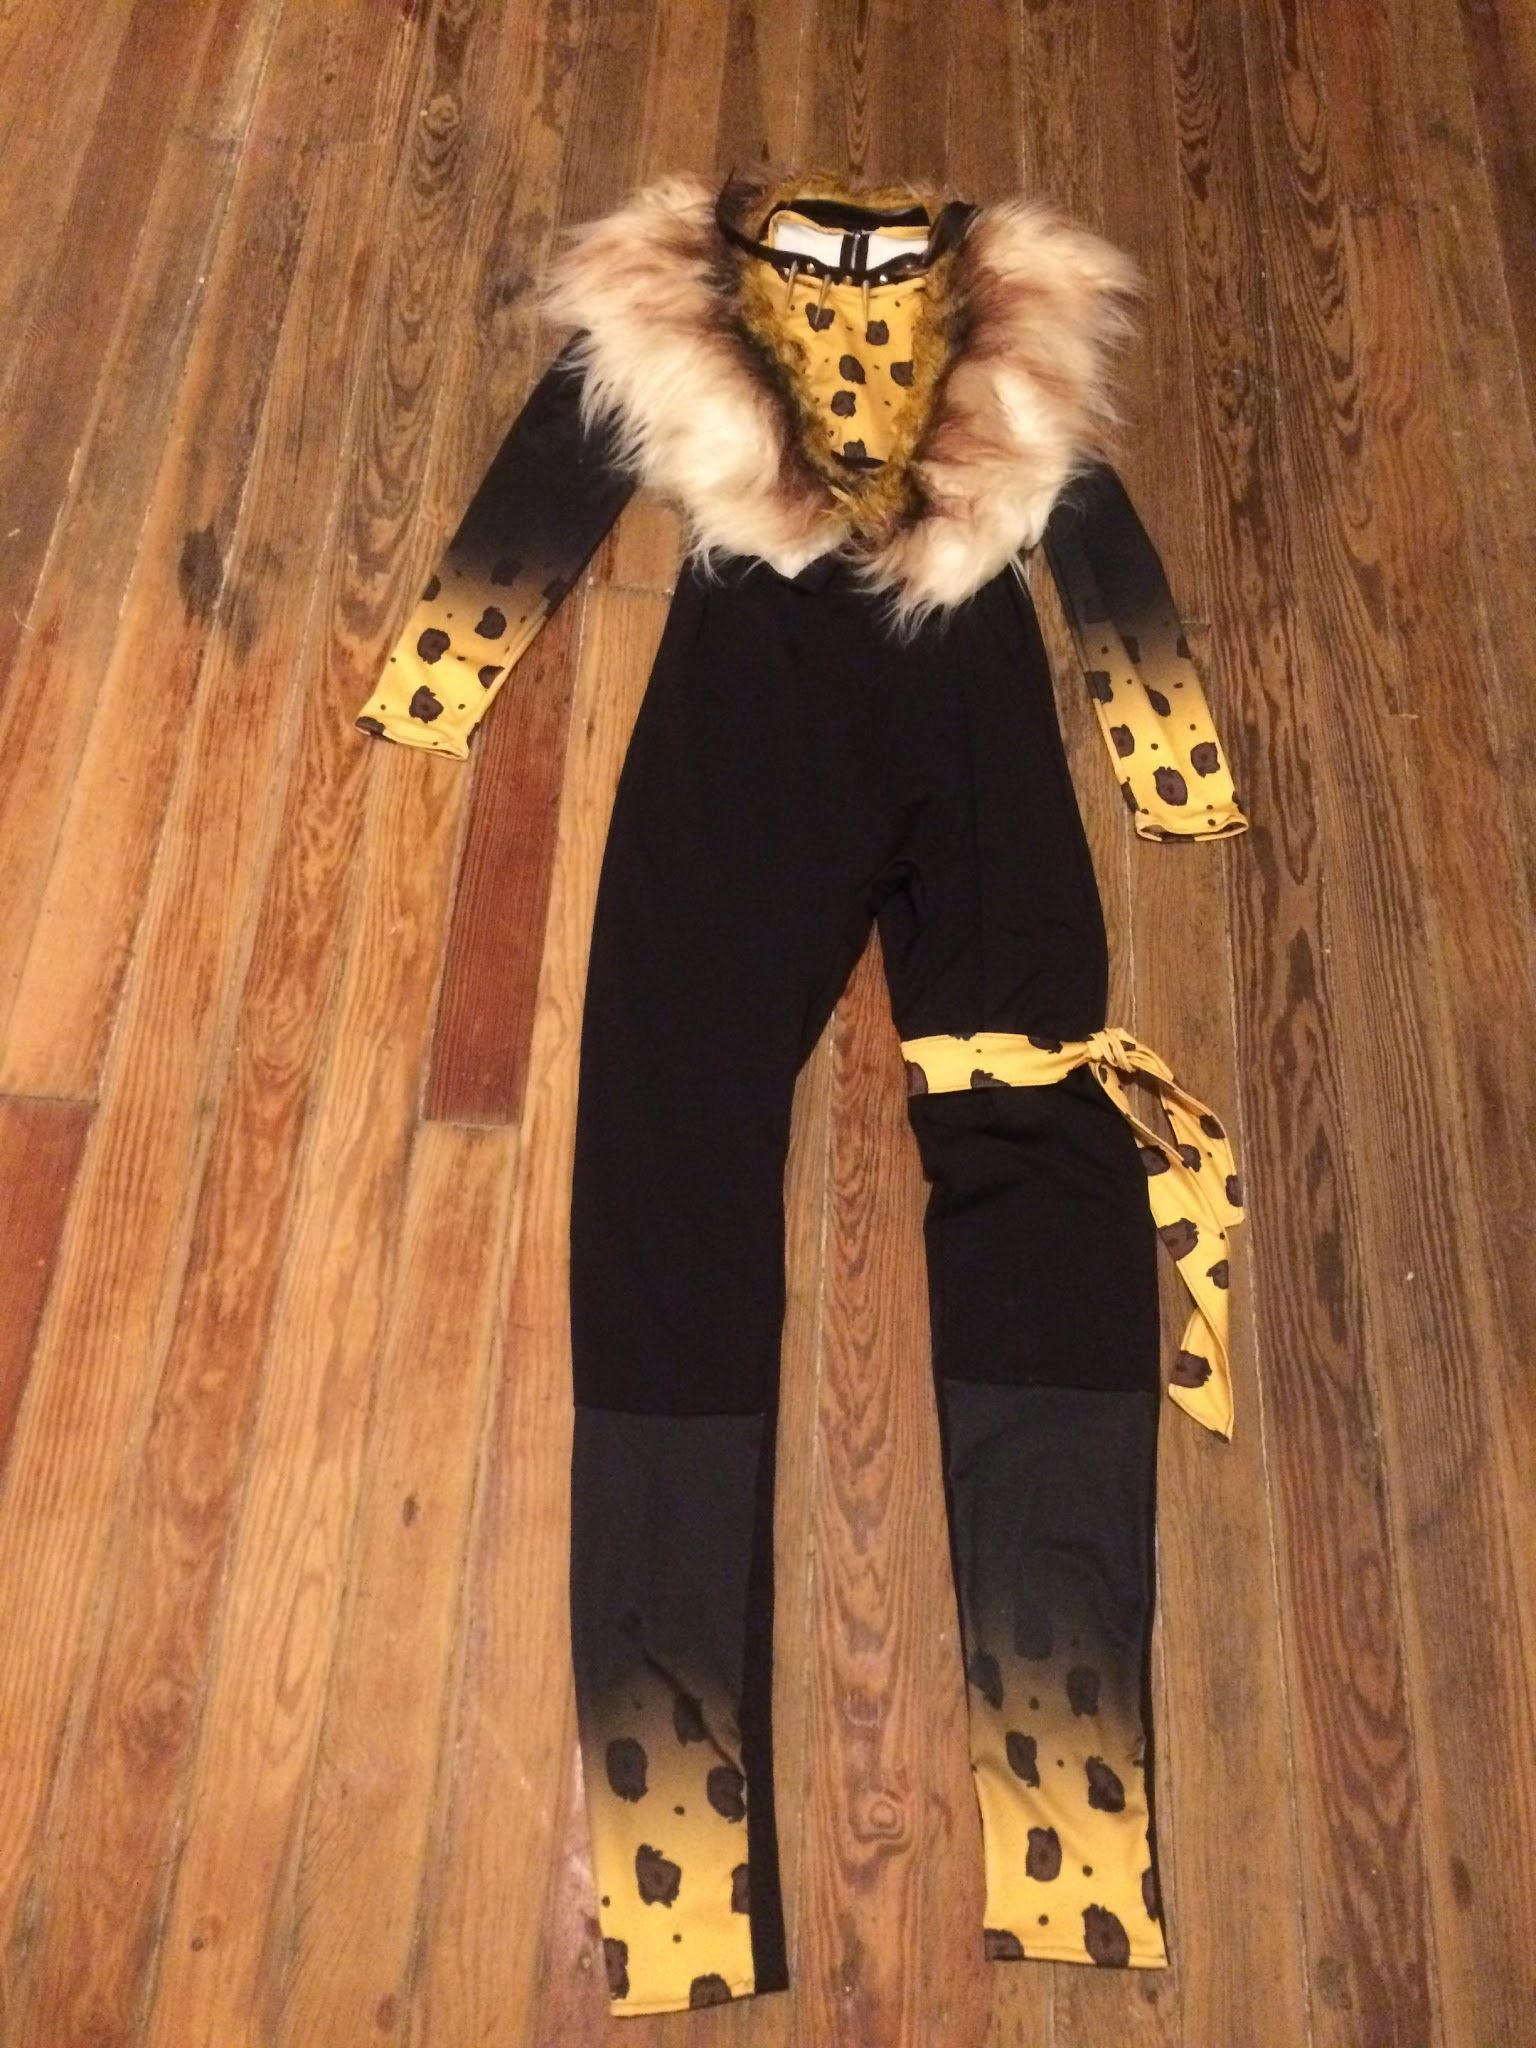 [Self Drafted] I made a Rum Tum Tugger costume for a